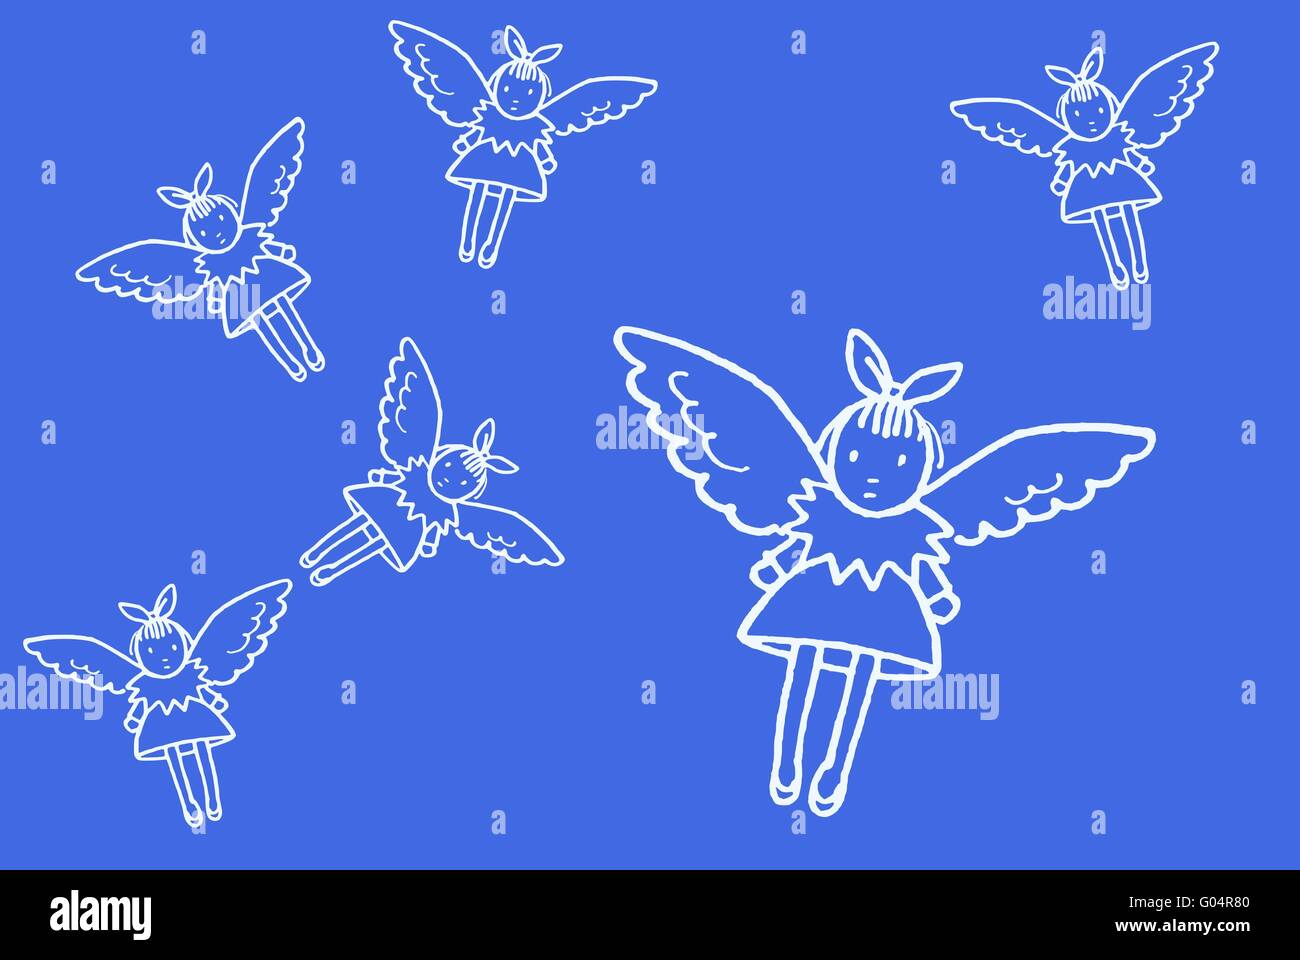 A pattern of funny angeles - Stock Image